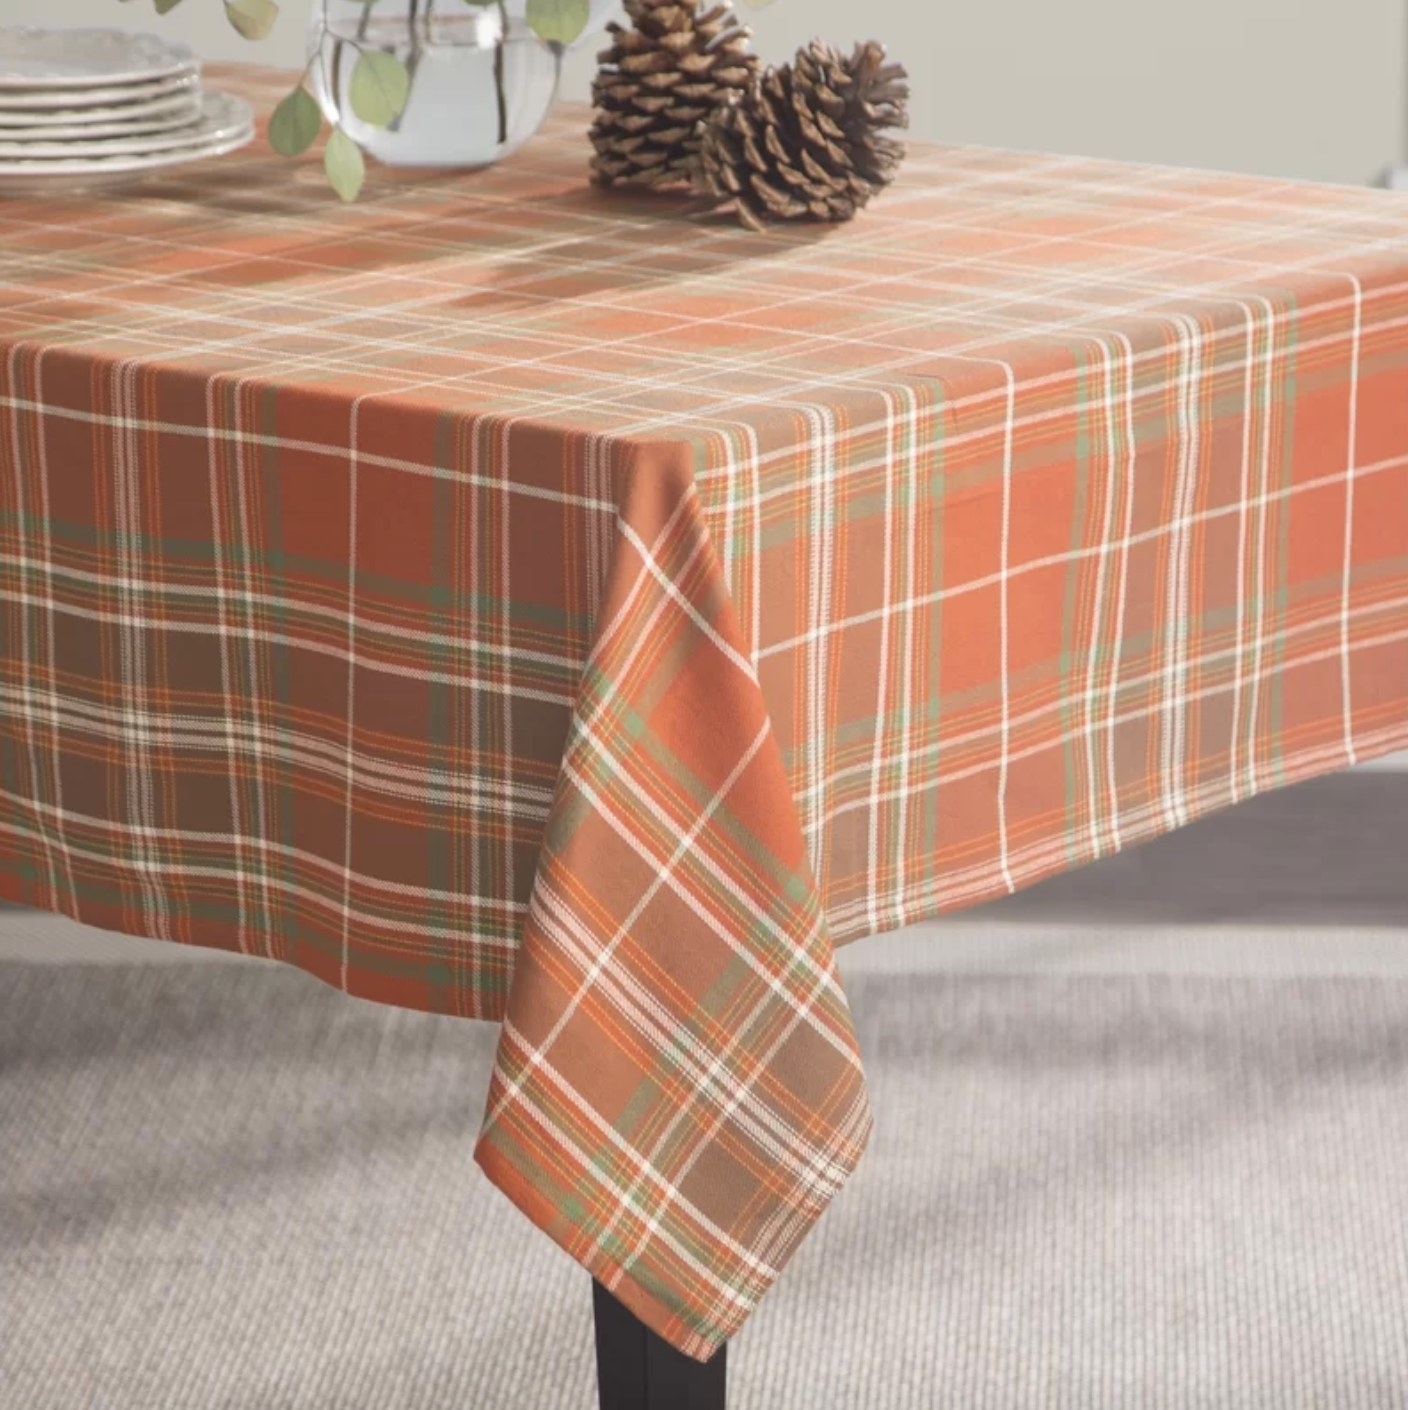 The plaid tablecloth in orange, green, and white